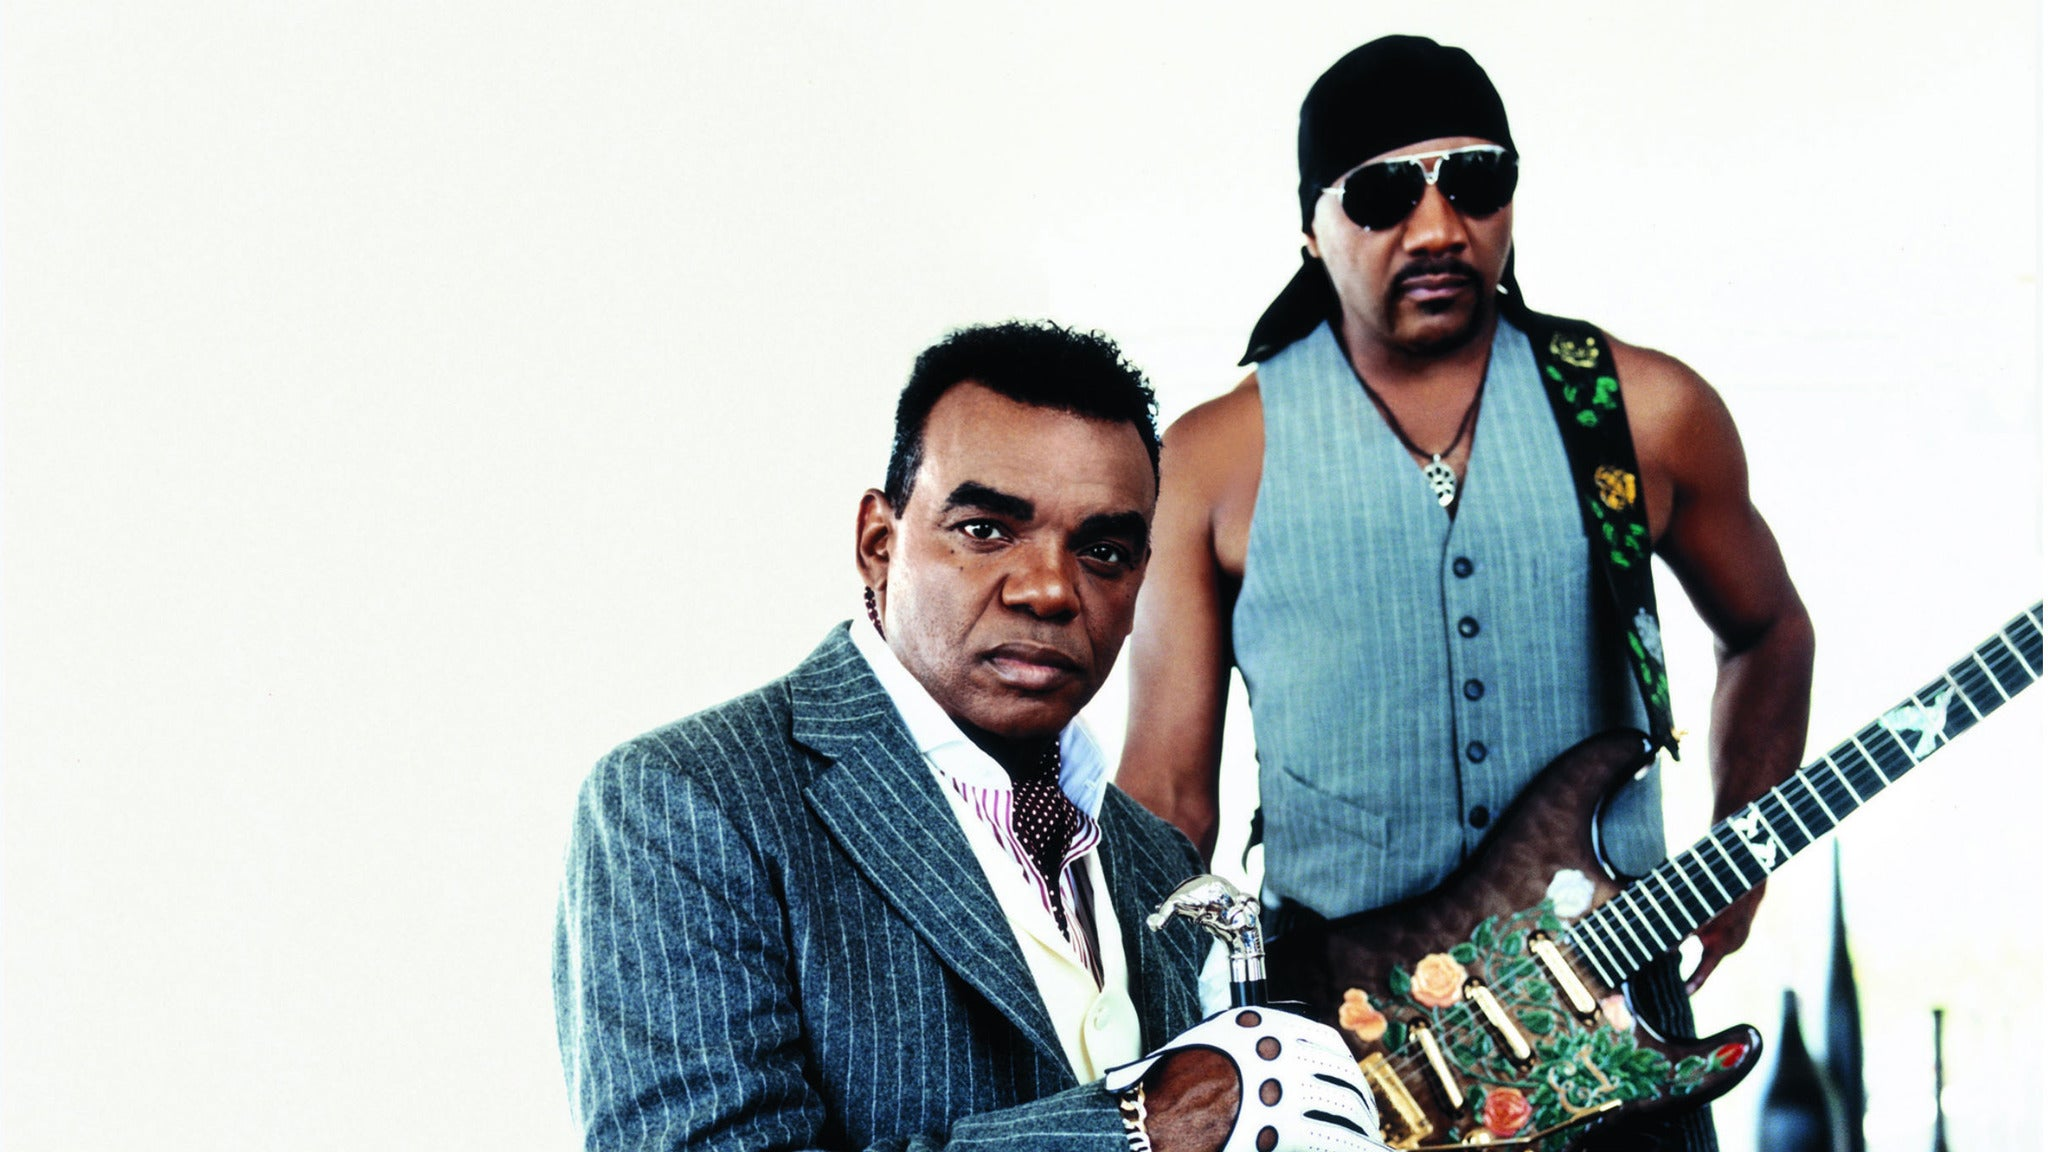 Isley Brothers at The Tulalip Amphitheatre